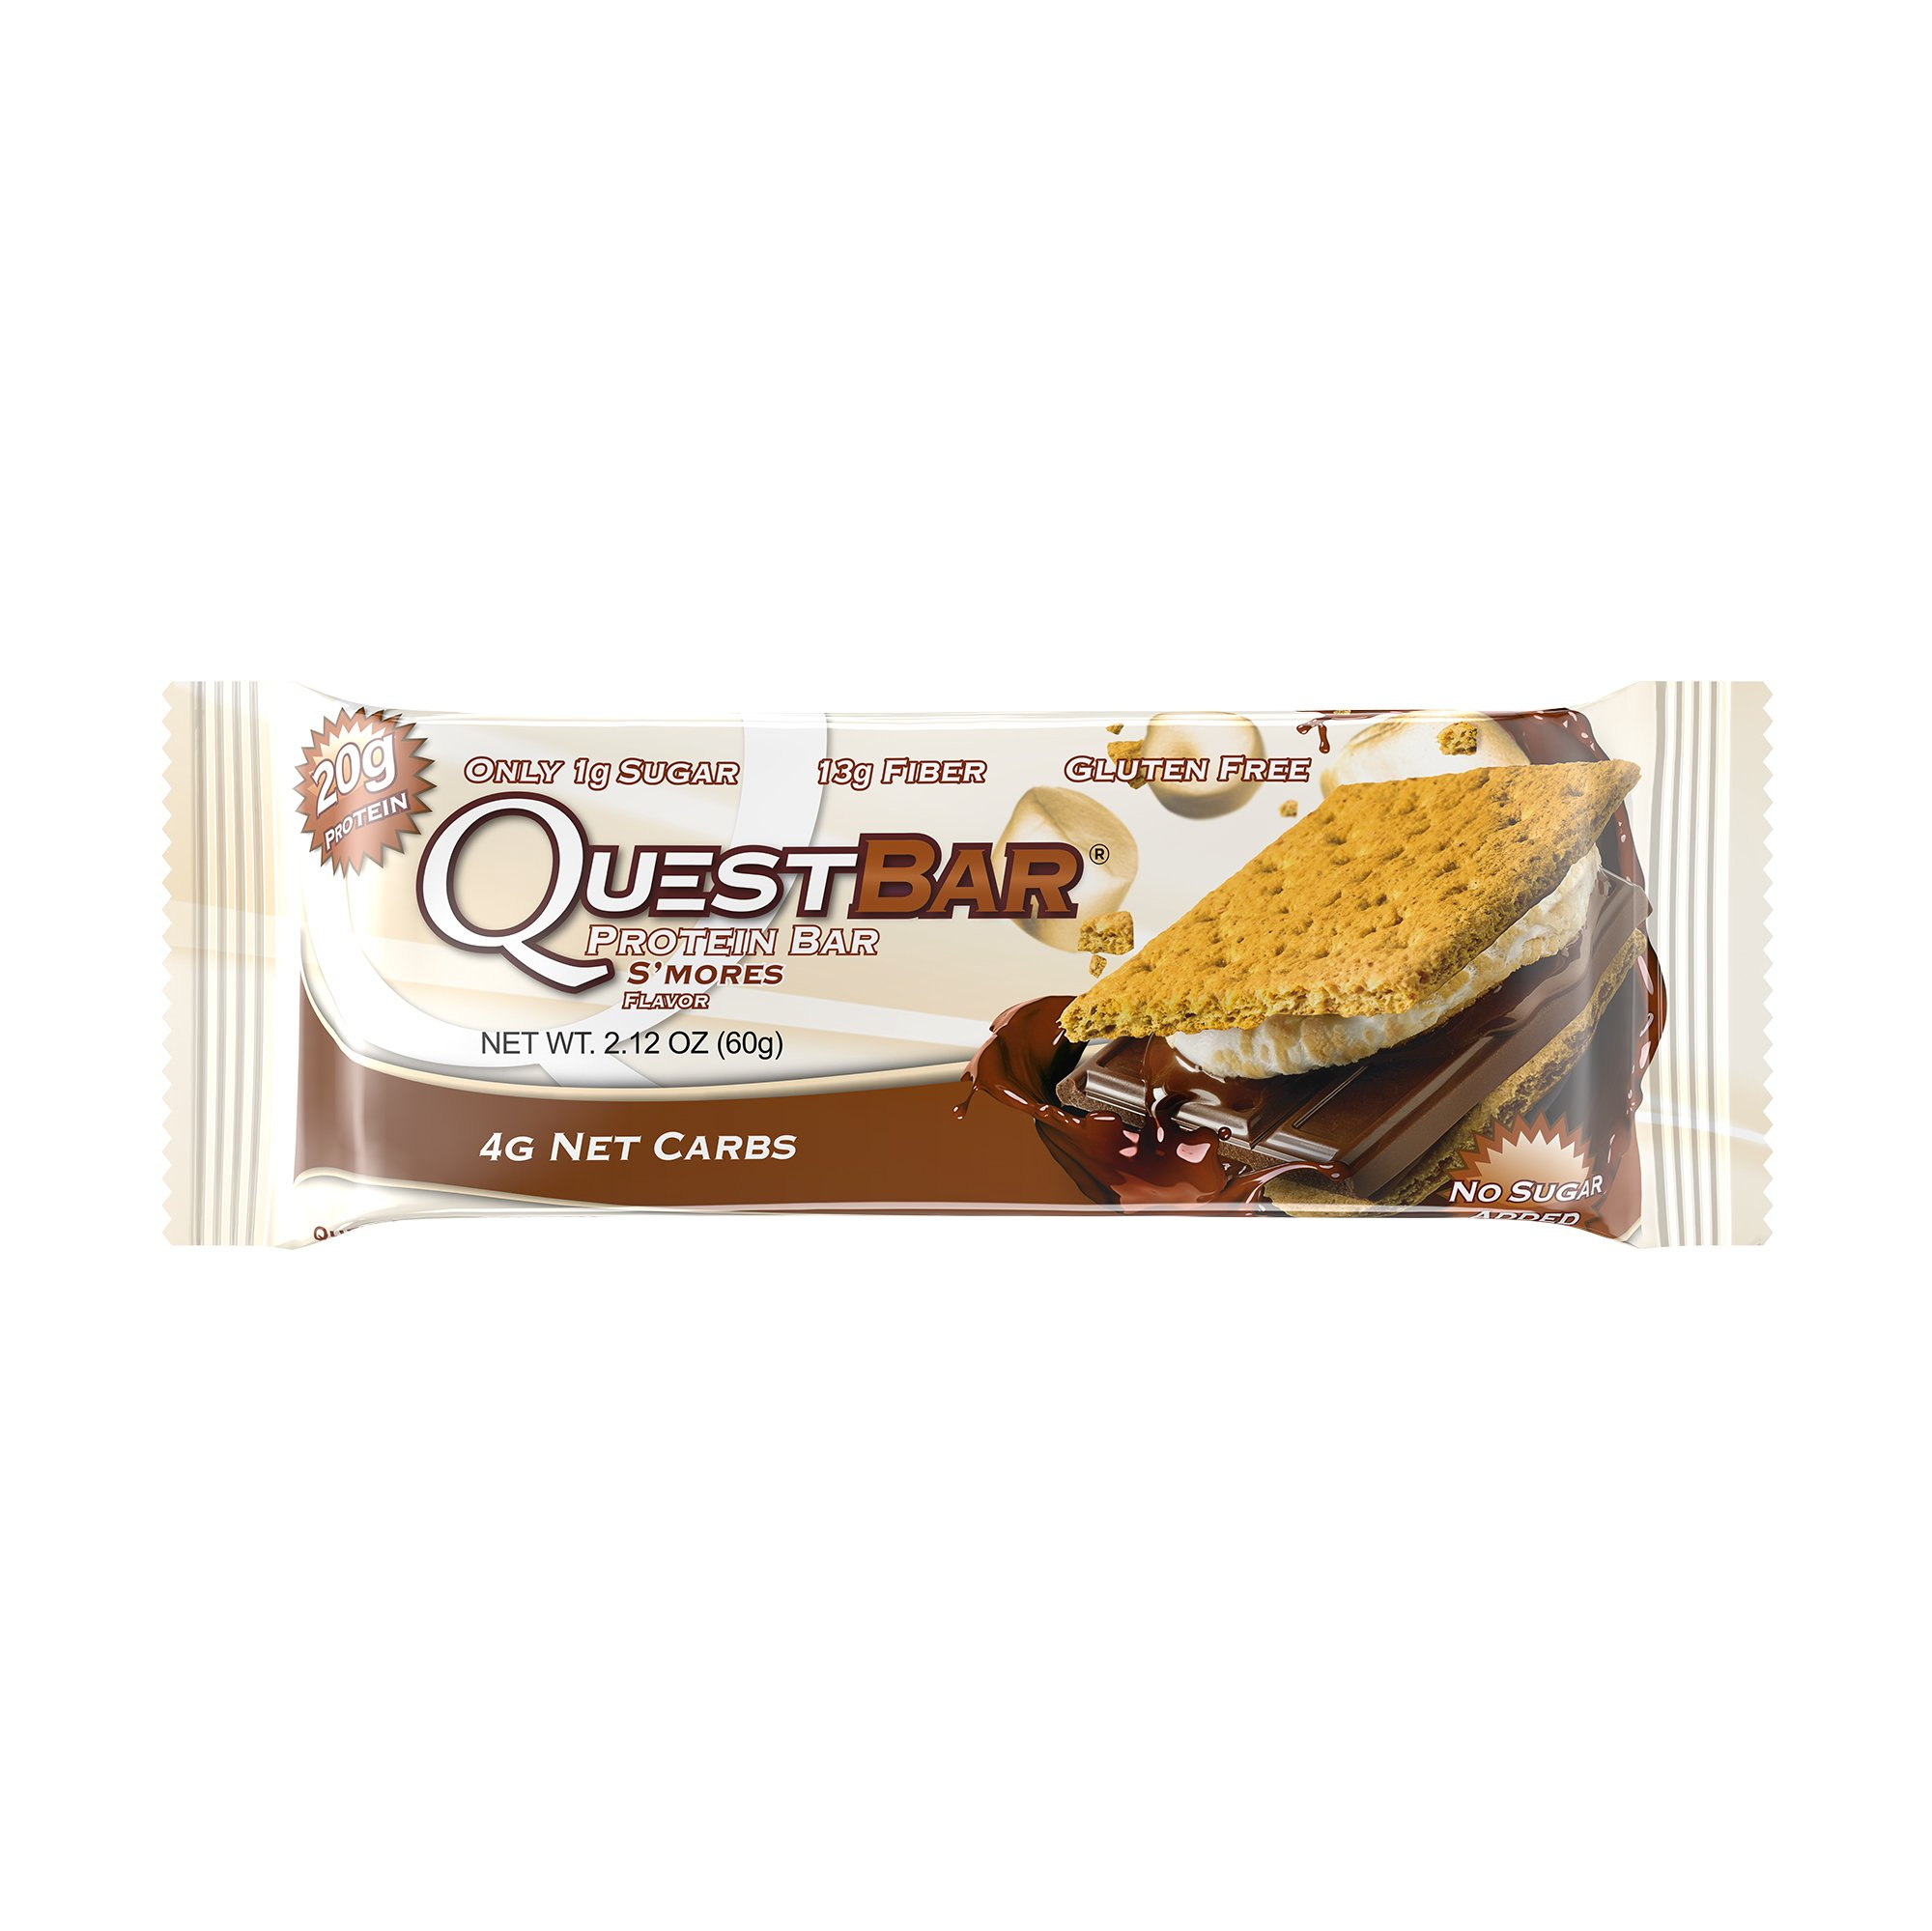 Quest Nutrition Protein Bar, S'mores, 20g Protein, 4g Net Carbs, 180 Cals, Low Carb, Gluten Free, Soy Free, 2.12oz Bar, 12 Count